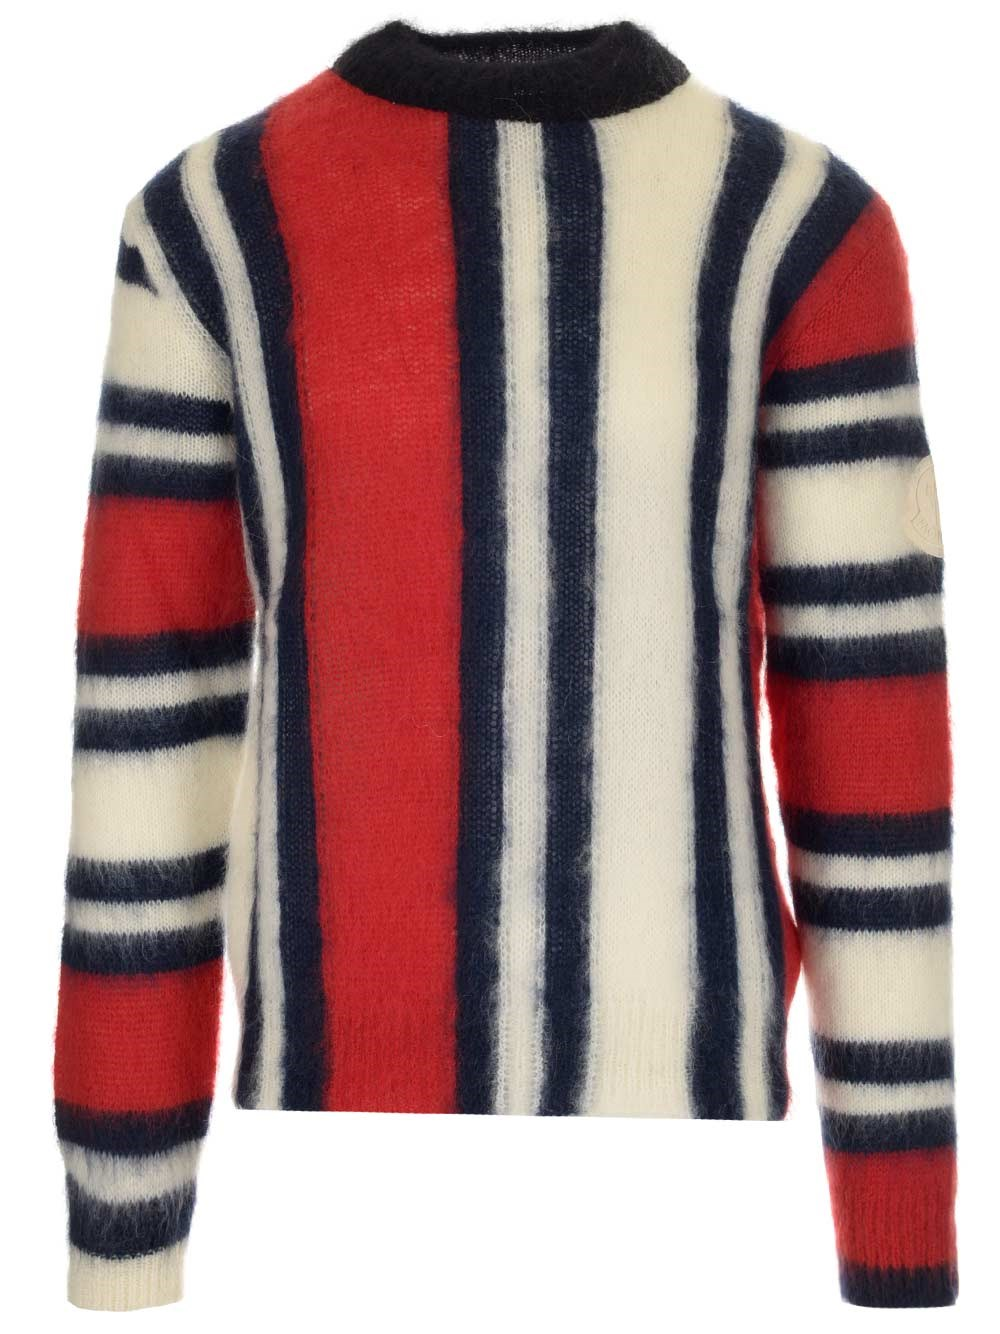 MONCLER GENIUS Sweater -2 Moncler 1952